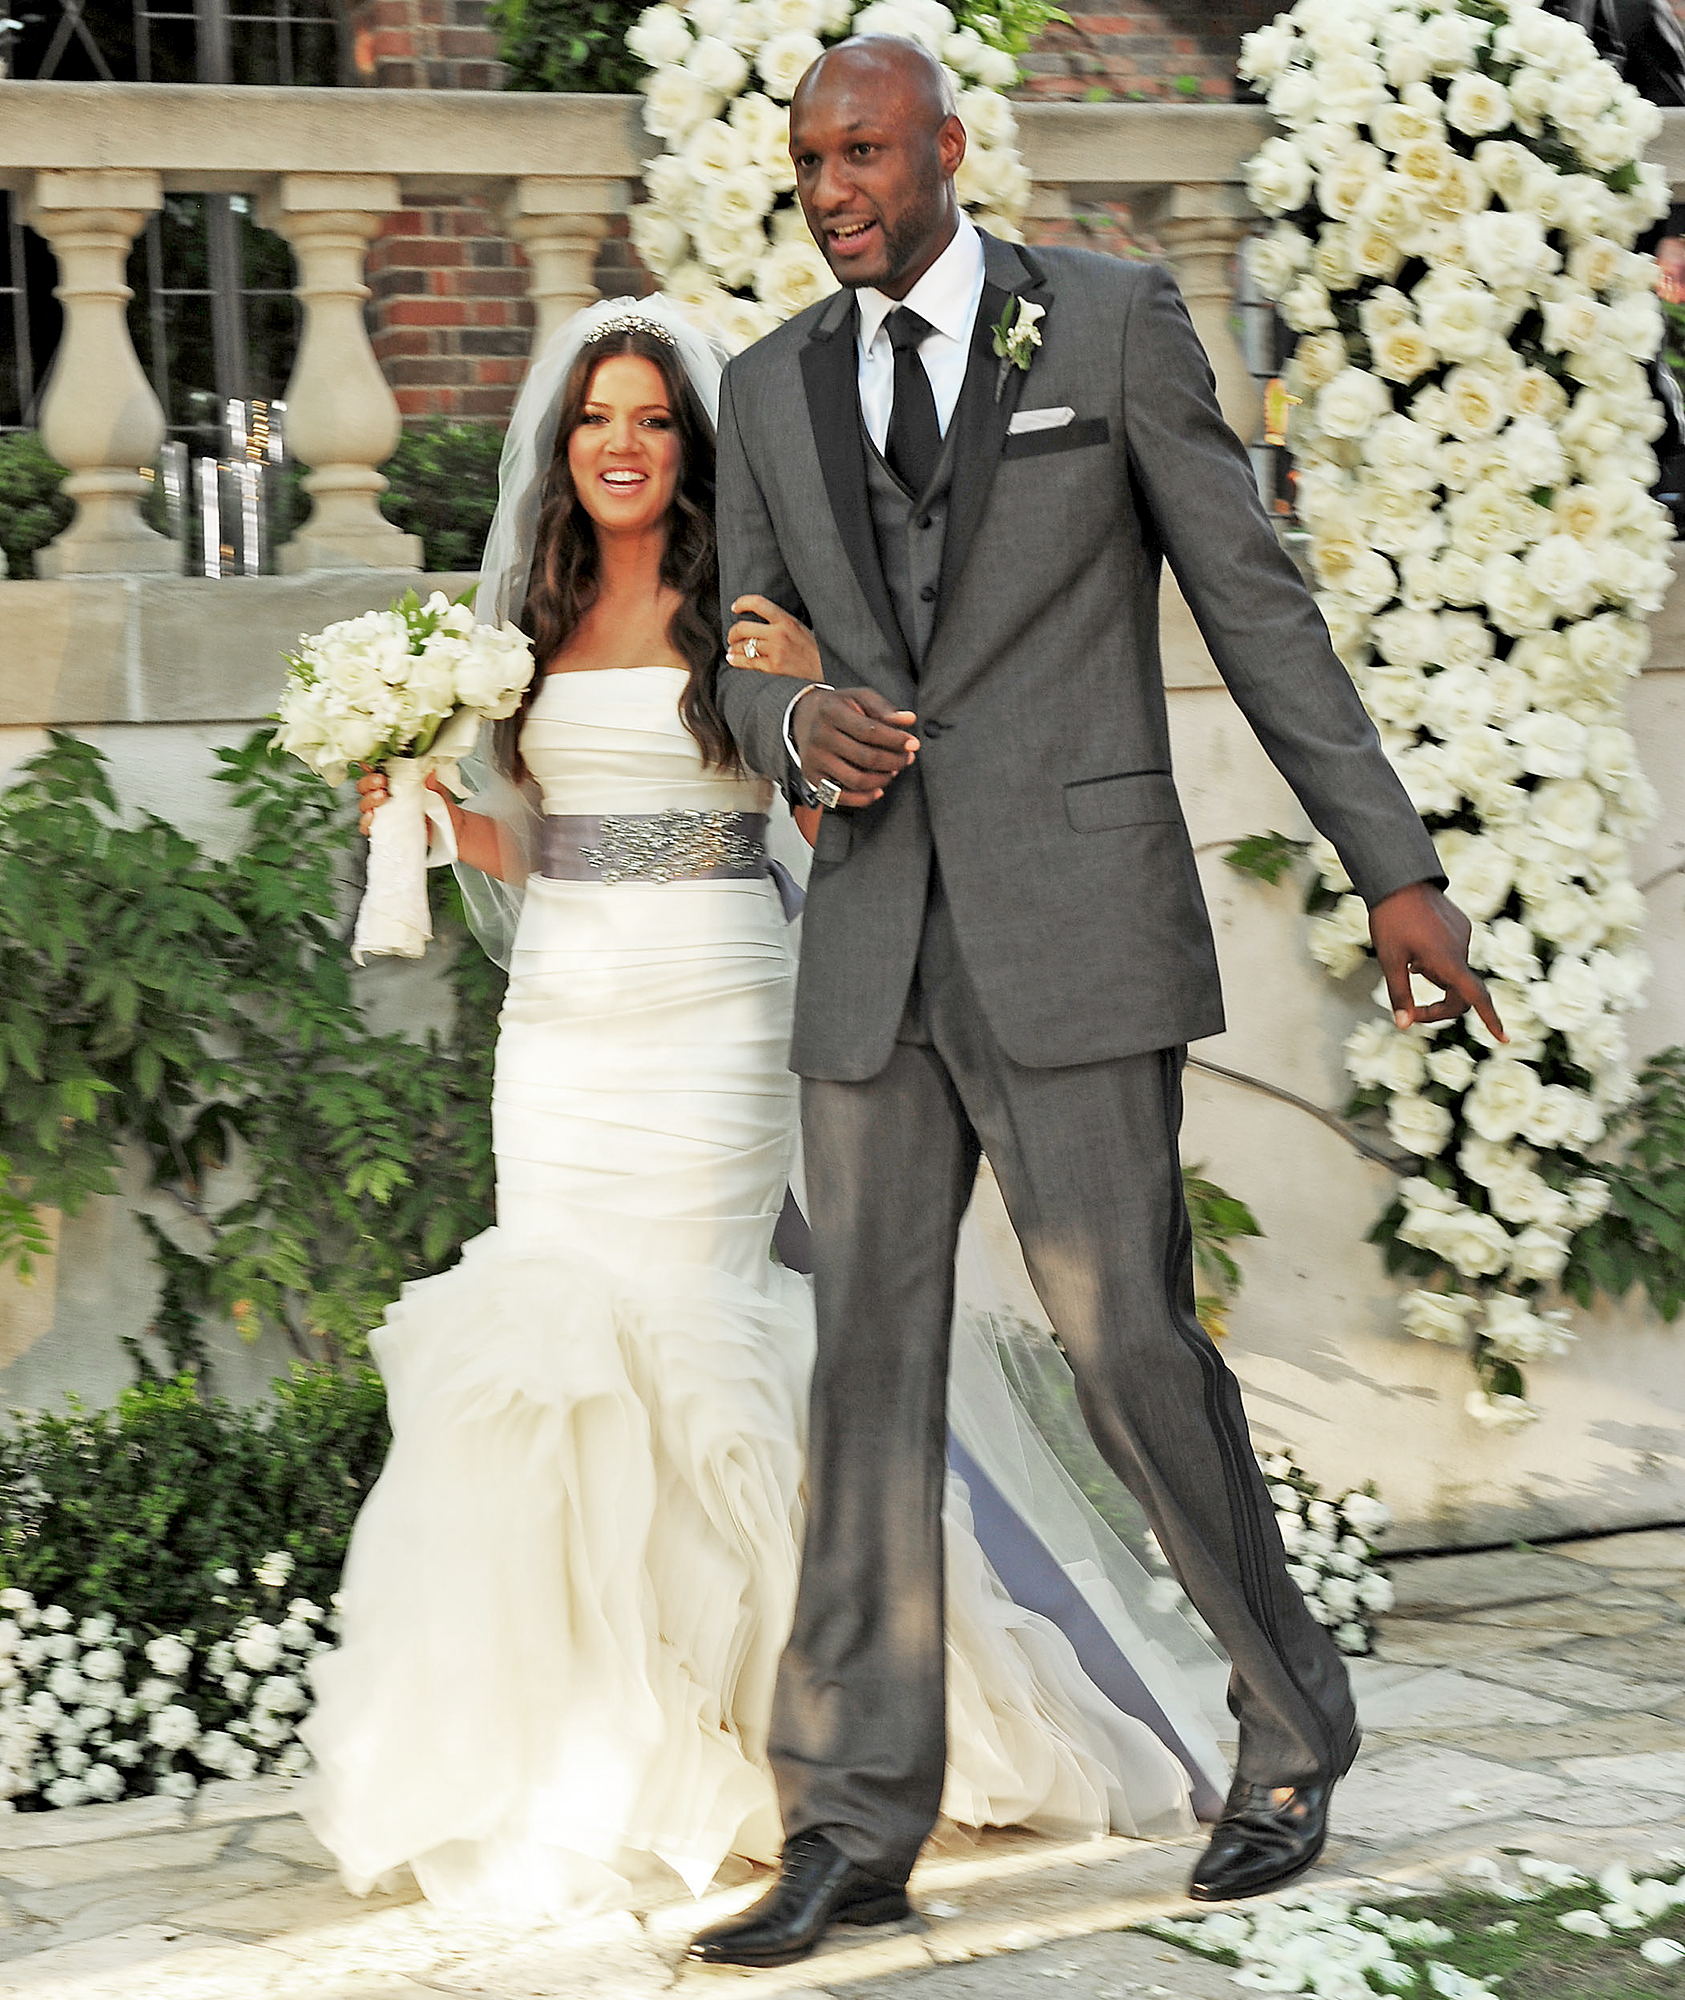 Khloe Kardashian Wedding Dress: Khloe Kardashian, Lamar Odom's 2009 Wedding: What You Forgot